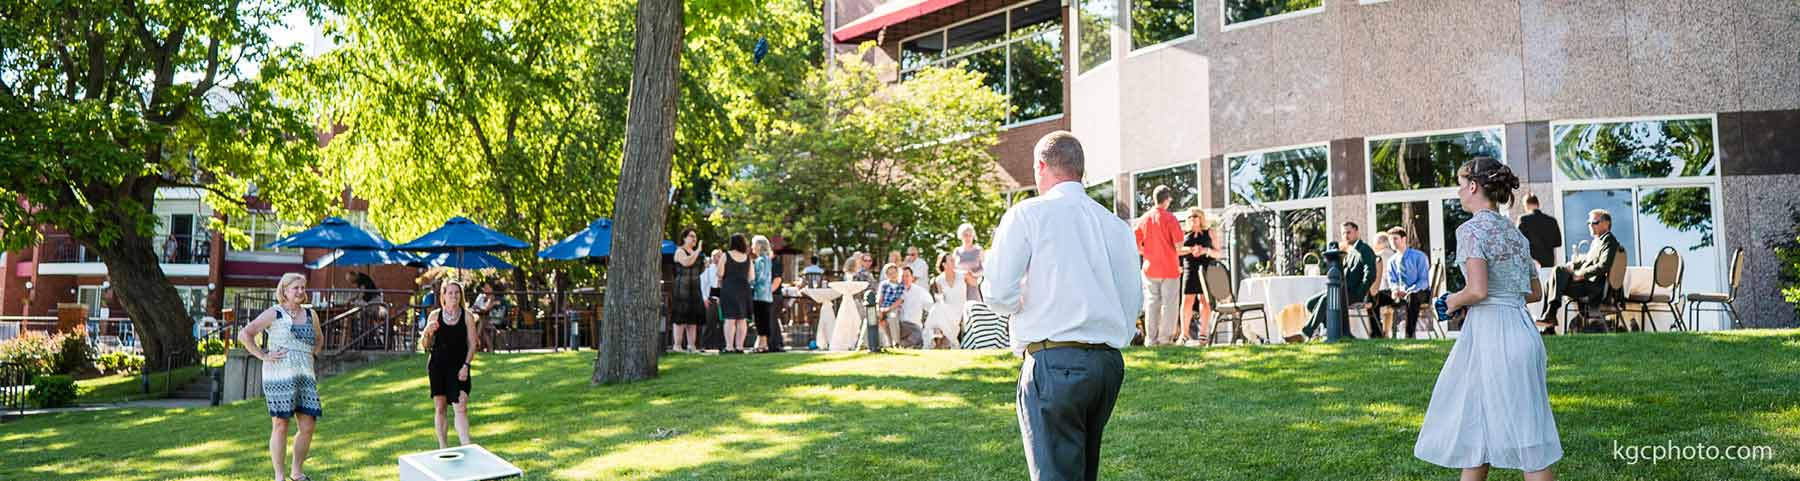 Wedding Rehearsals Green Lake WI, wisconsin weddings, green lake wi, heidel house resort & spa